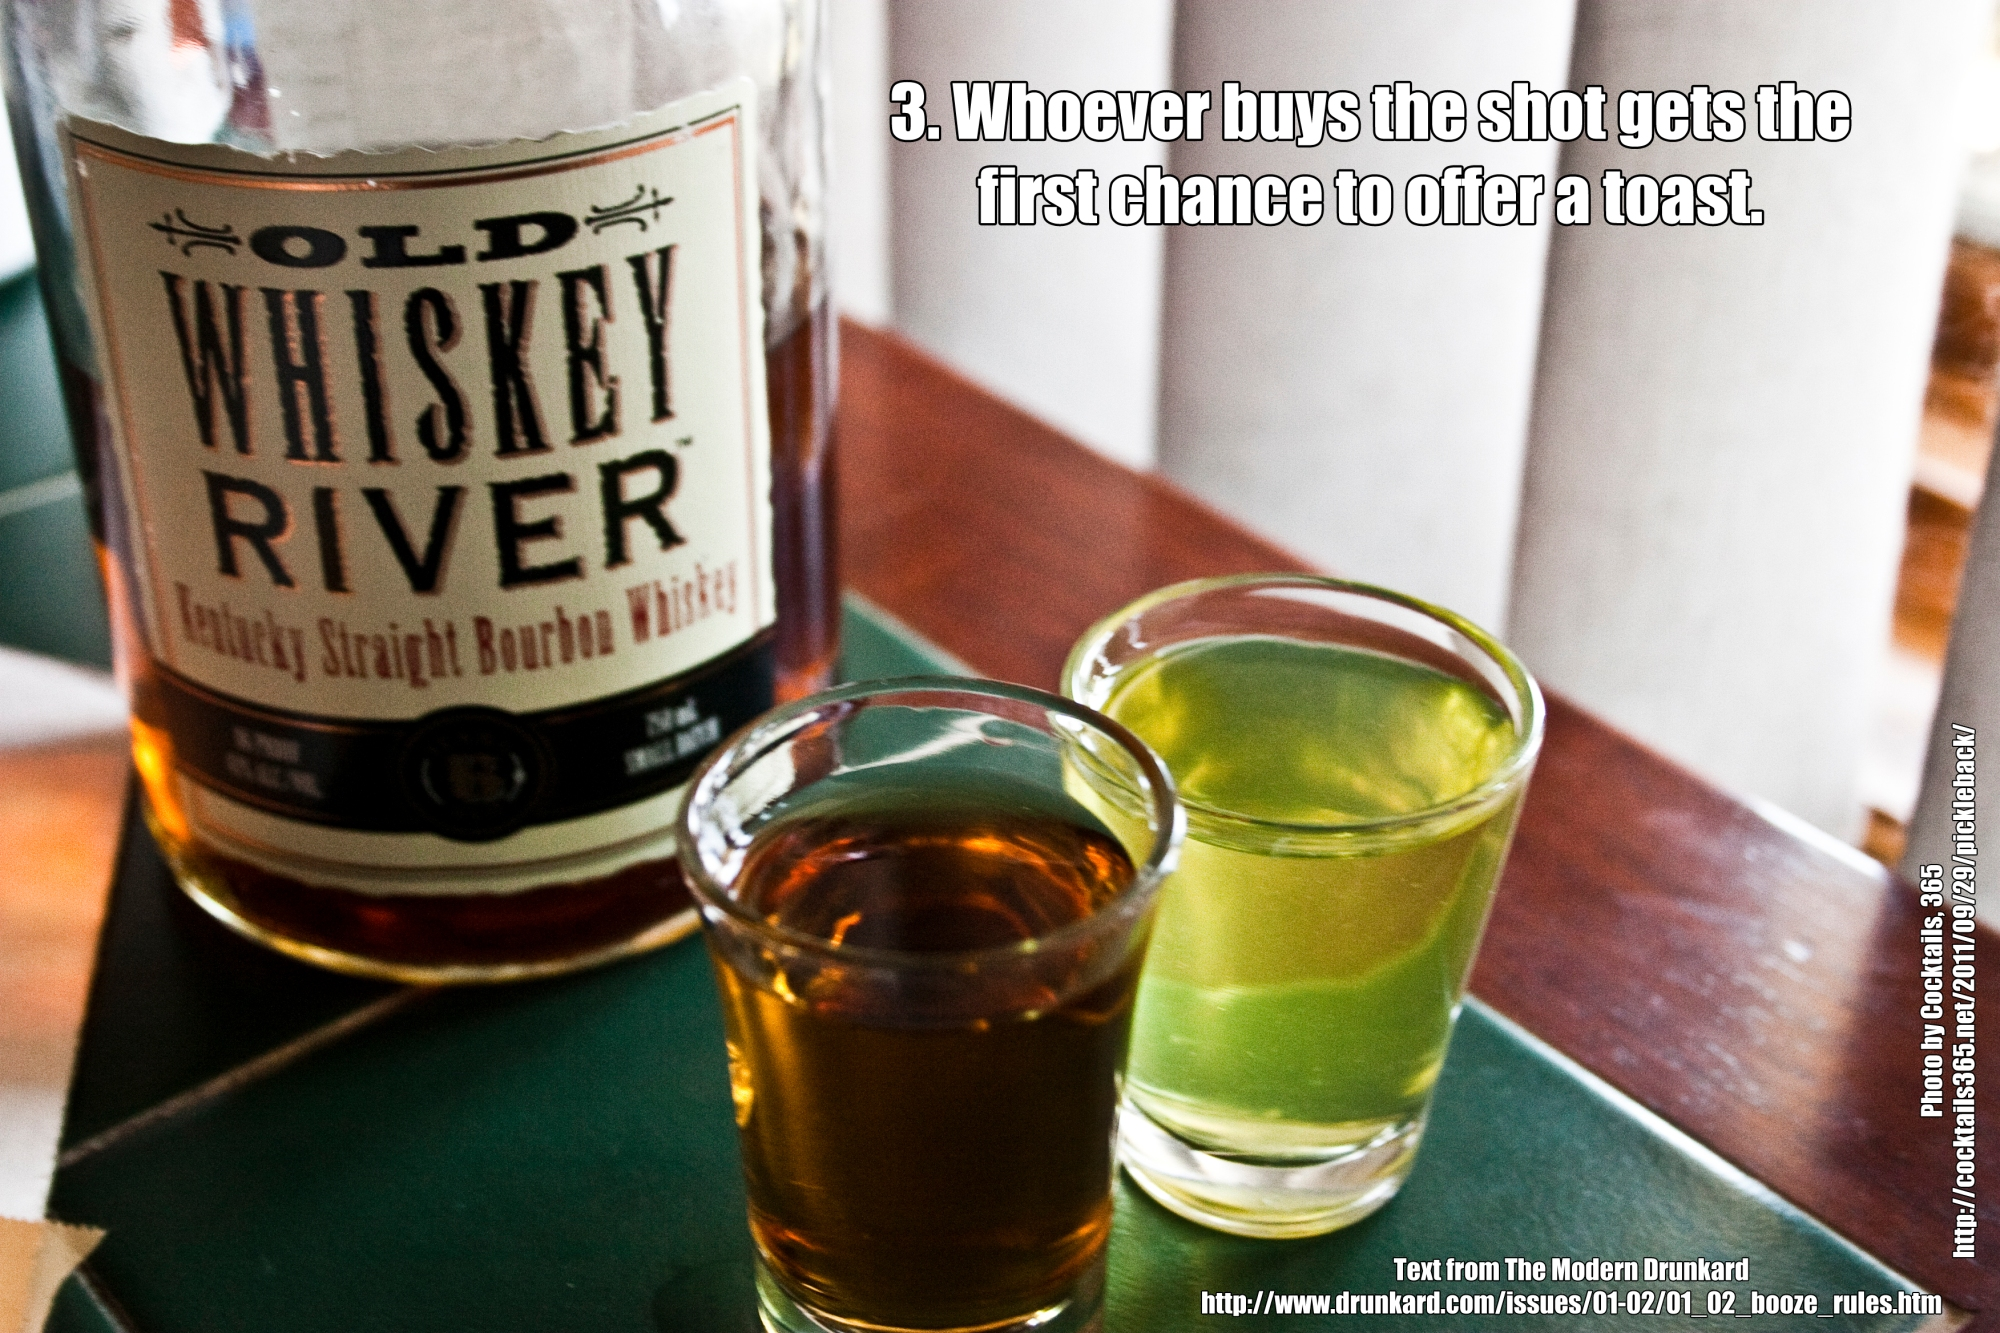 3. Whoever buys the shot gets the first chance to offer a toast.